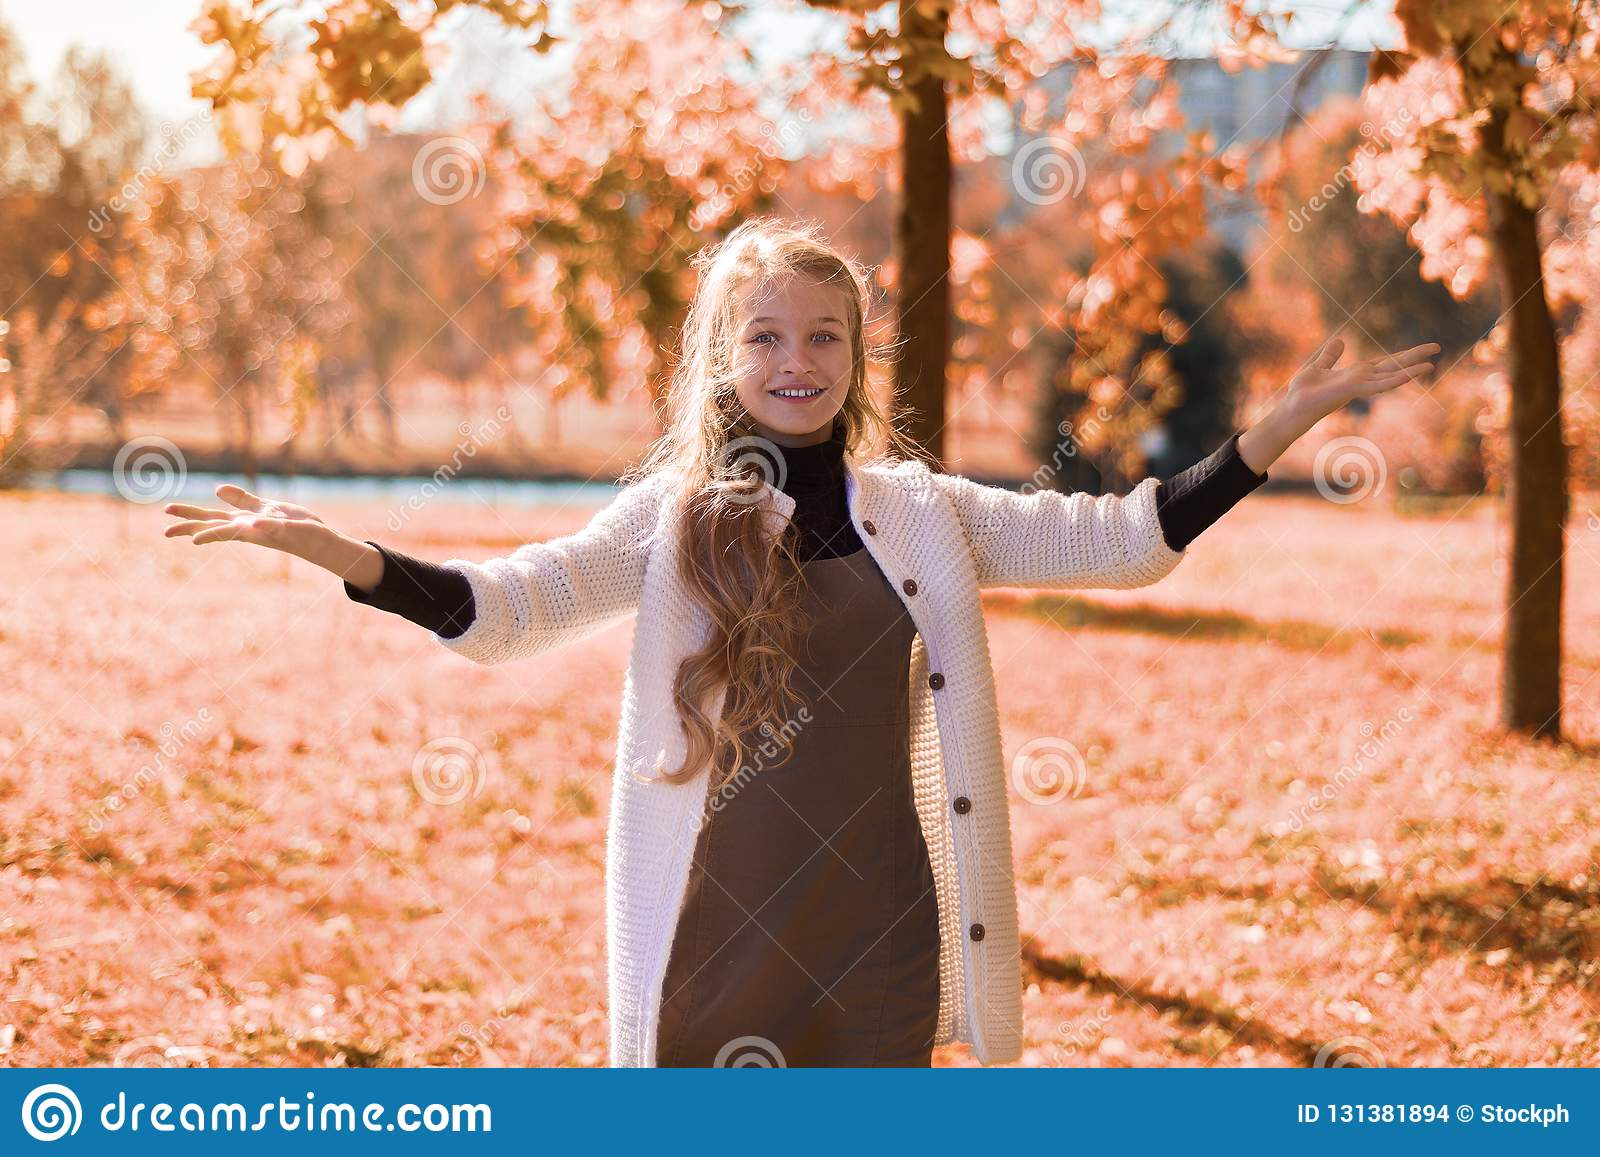 Autumn beautiful portrait of a young girl in the park with foliage. teenager smiles and hands up